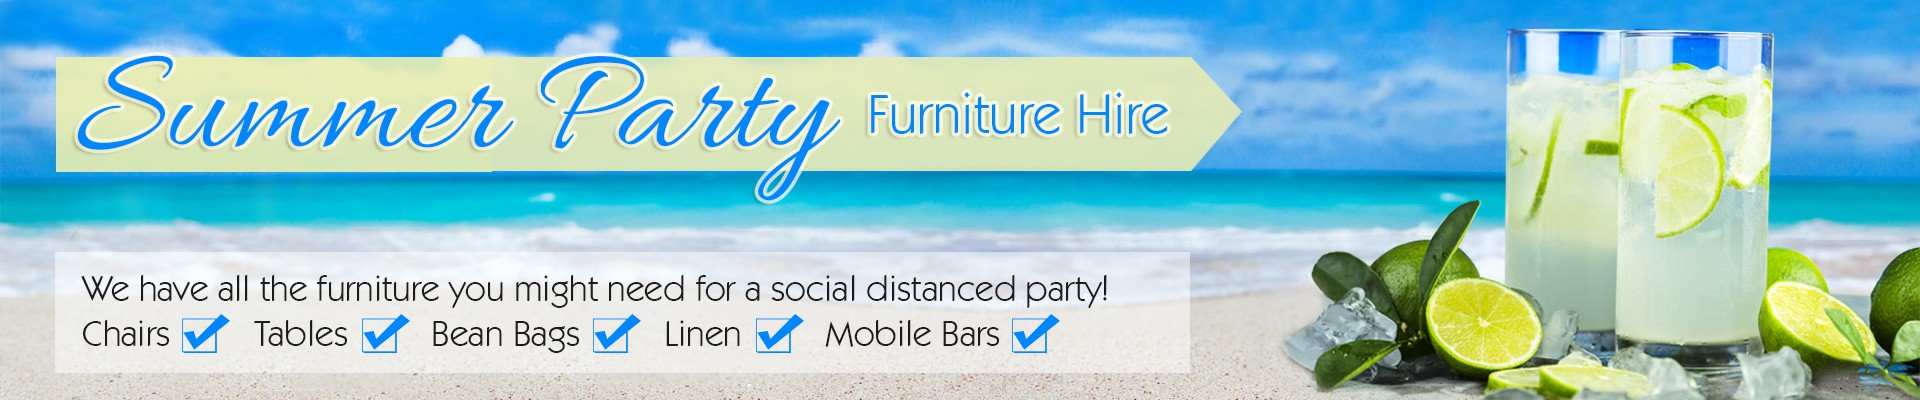 Hire Summer Party Furniture